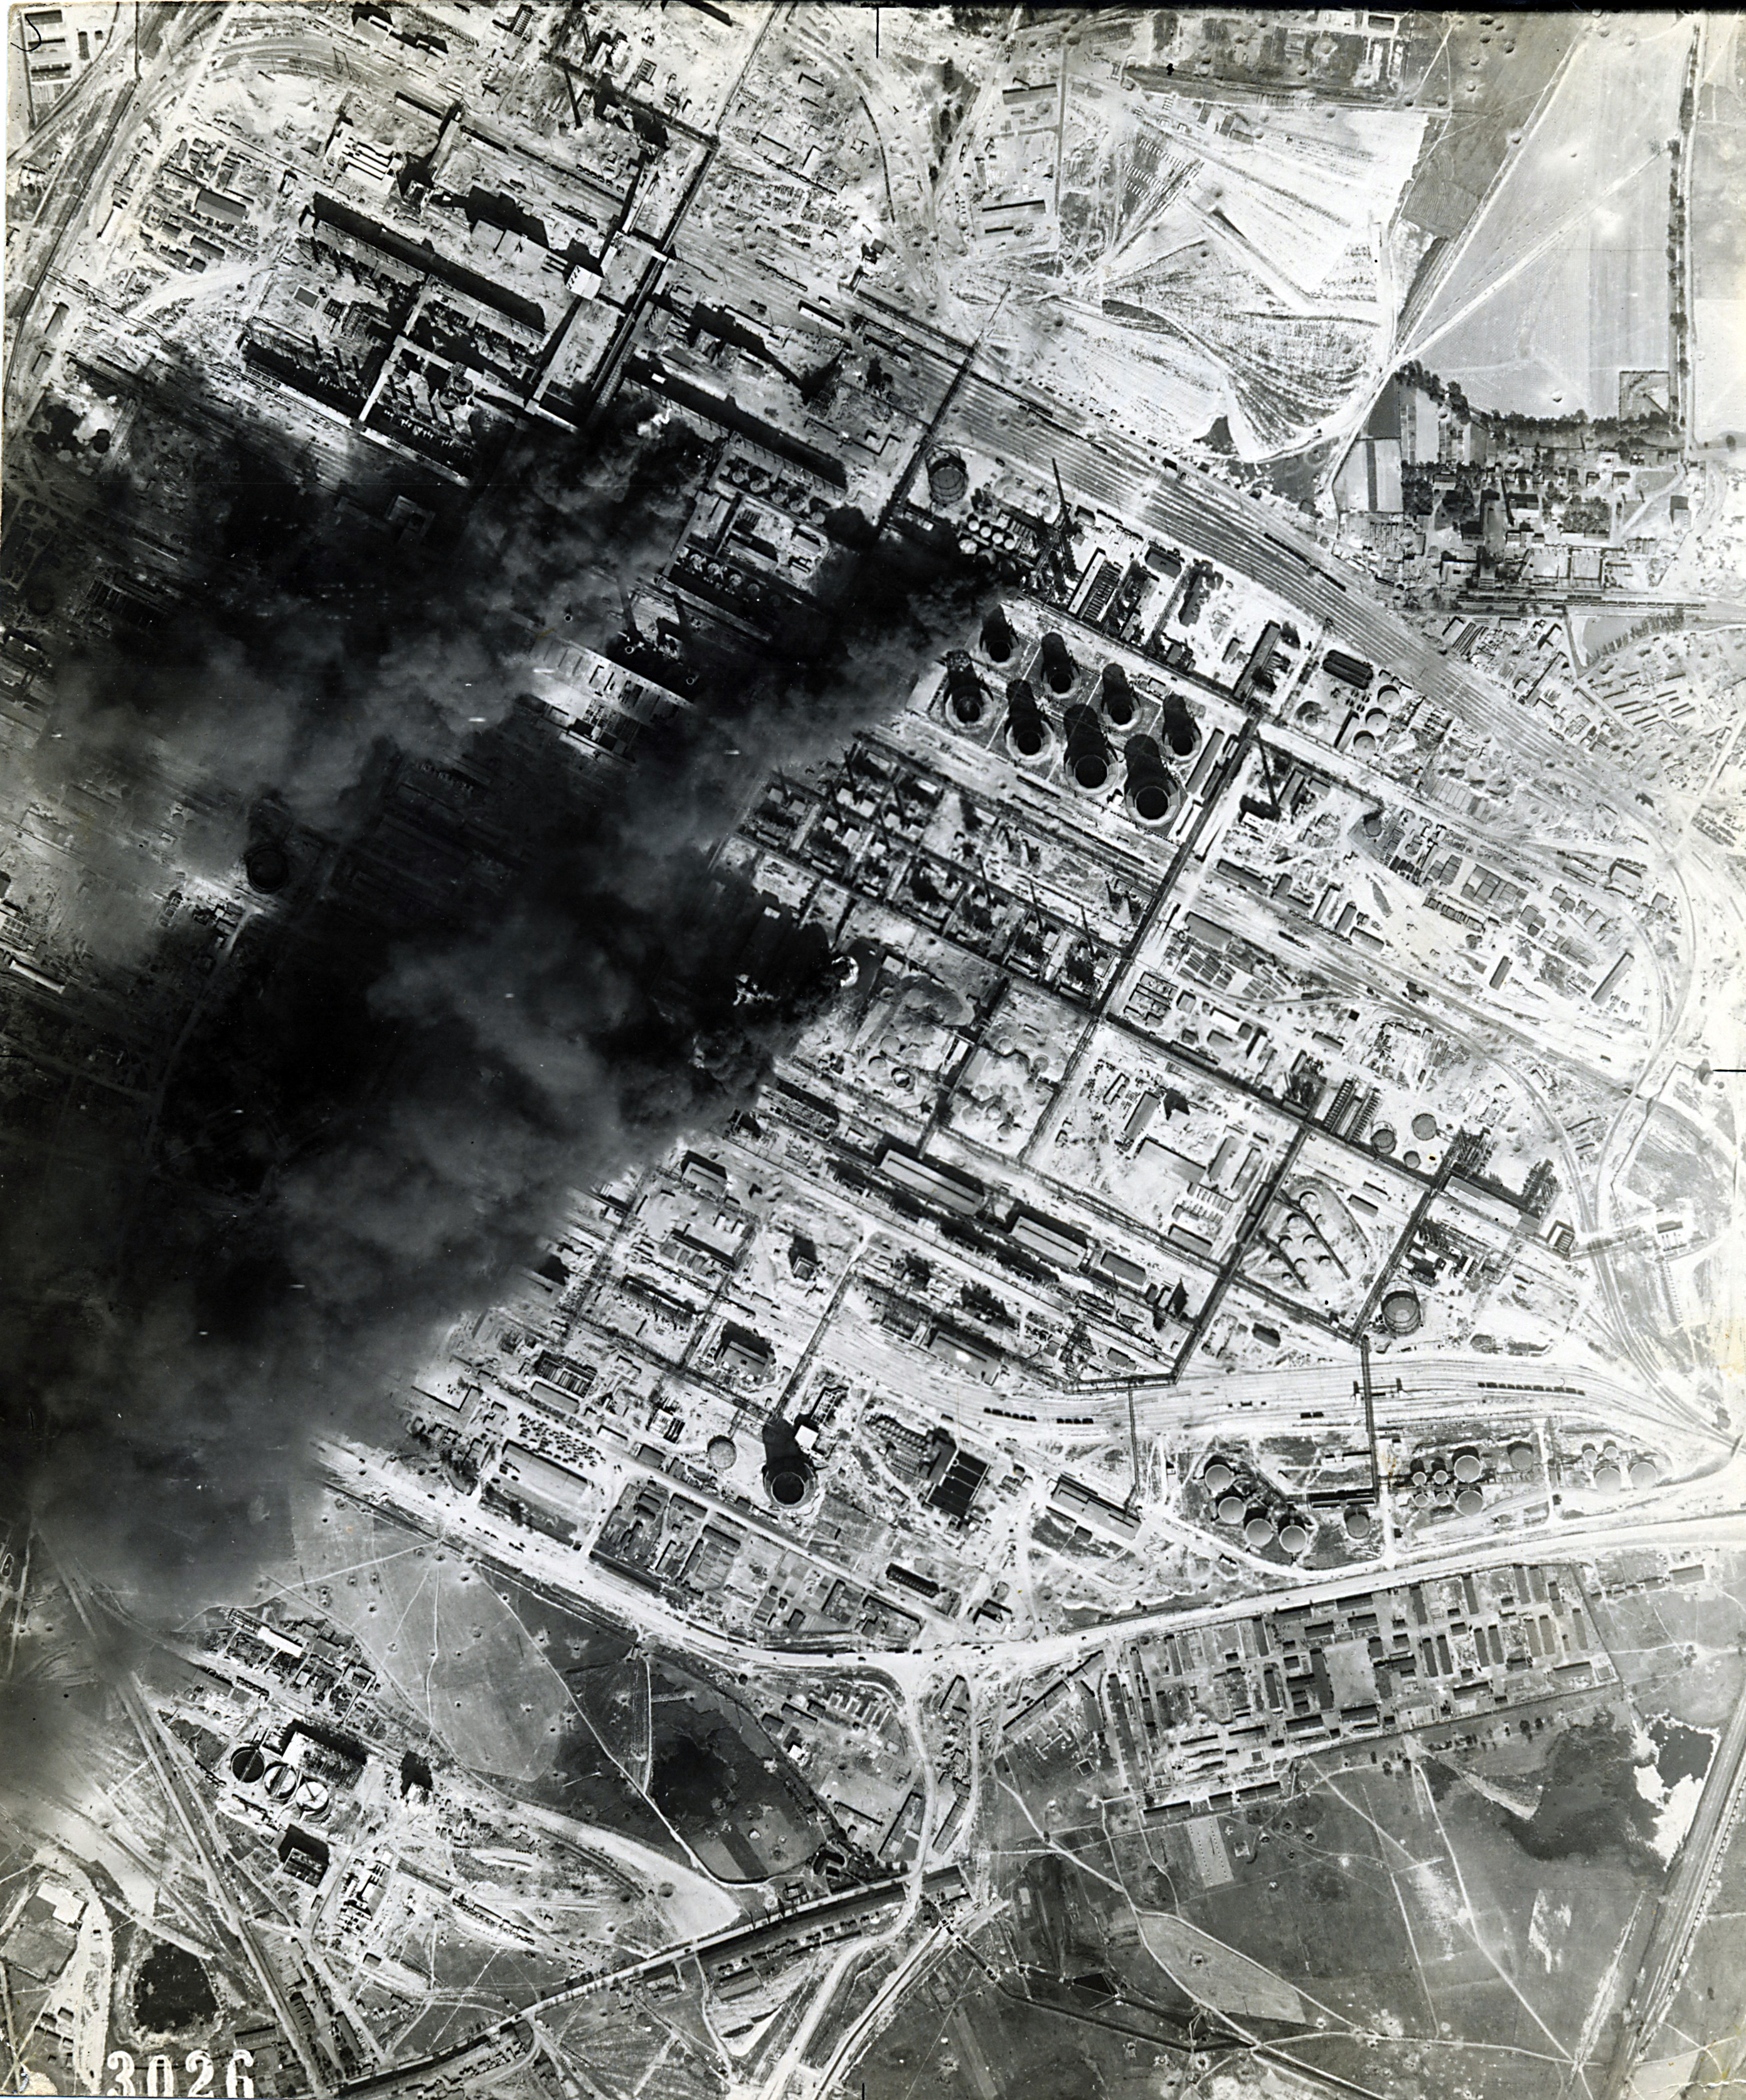 USAAAF 7PG22FS aerial recon photo to Brux Oil Refinery August 24 1944 01